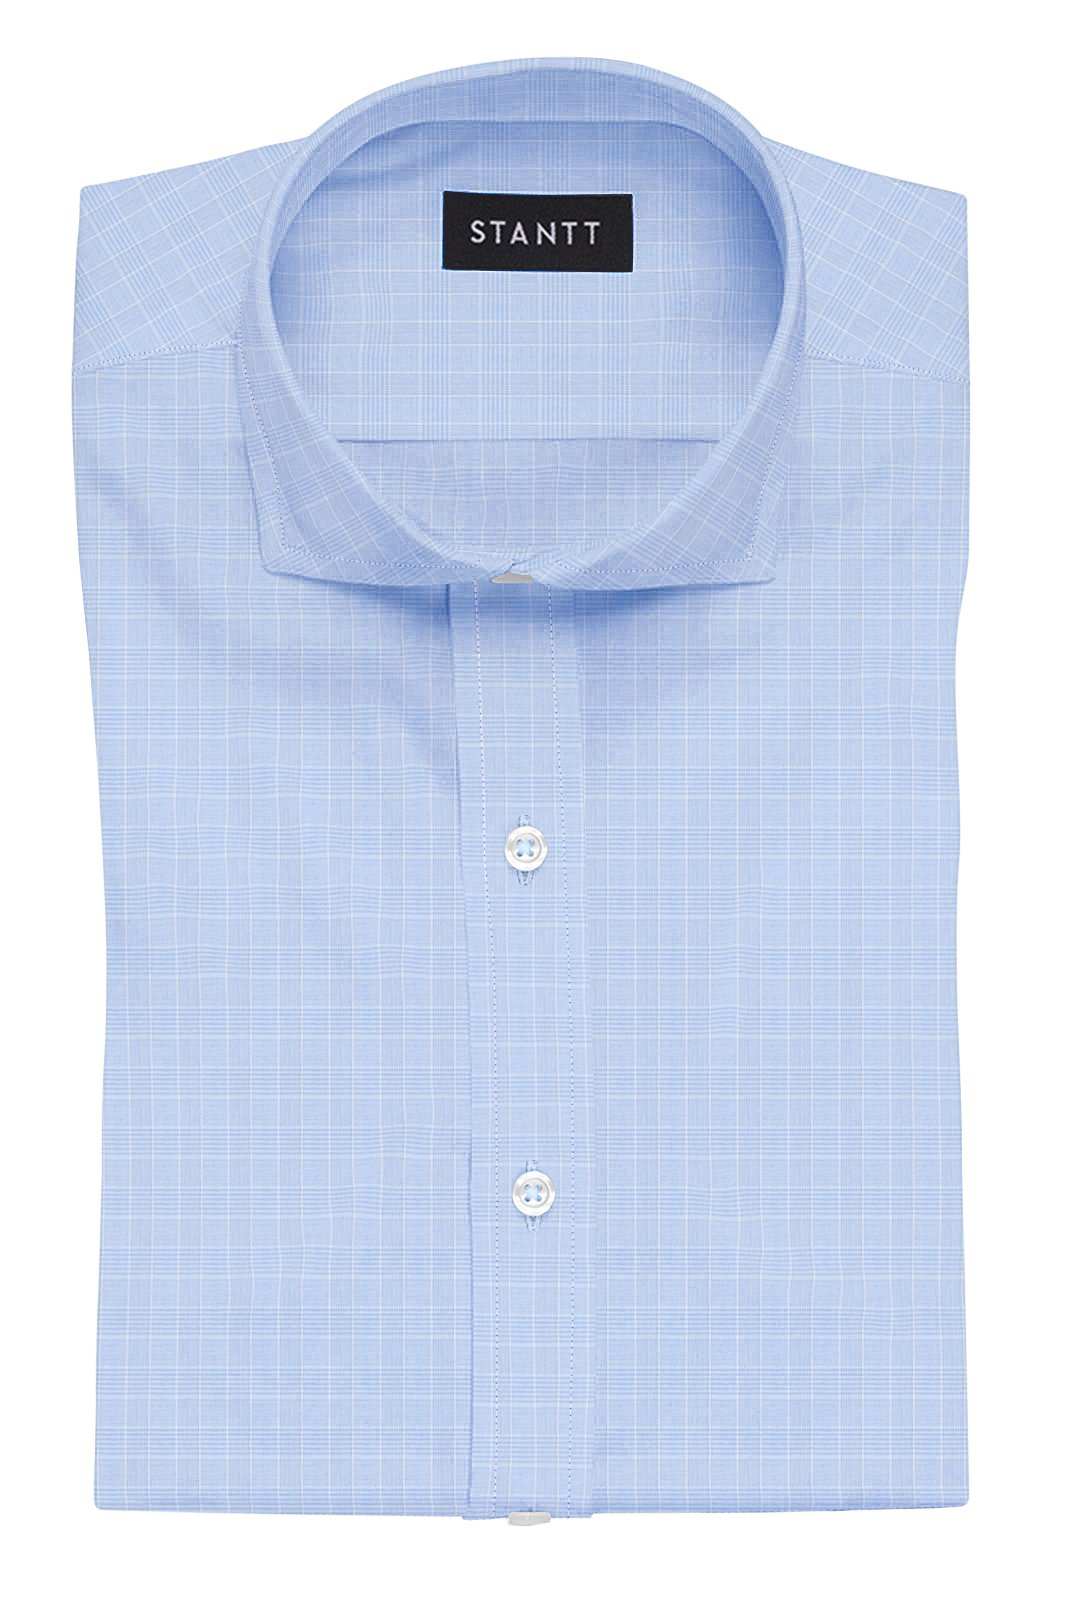 Light Blue Mini Prince of Wales Check: Cutaway Collar, French Cuff